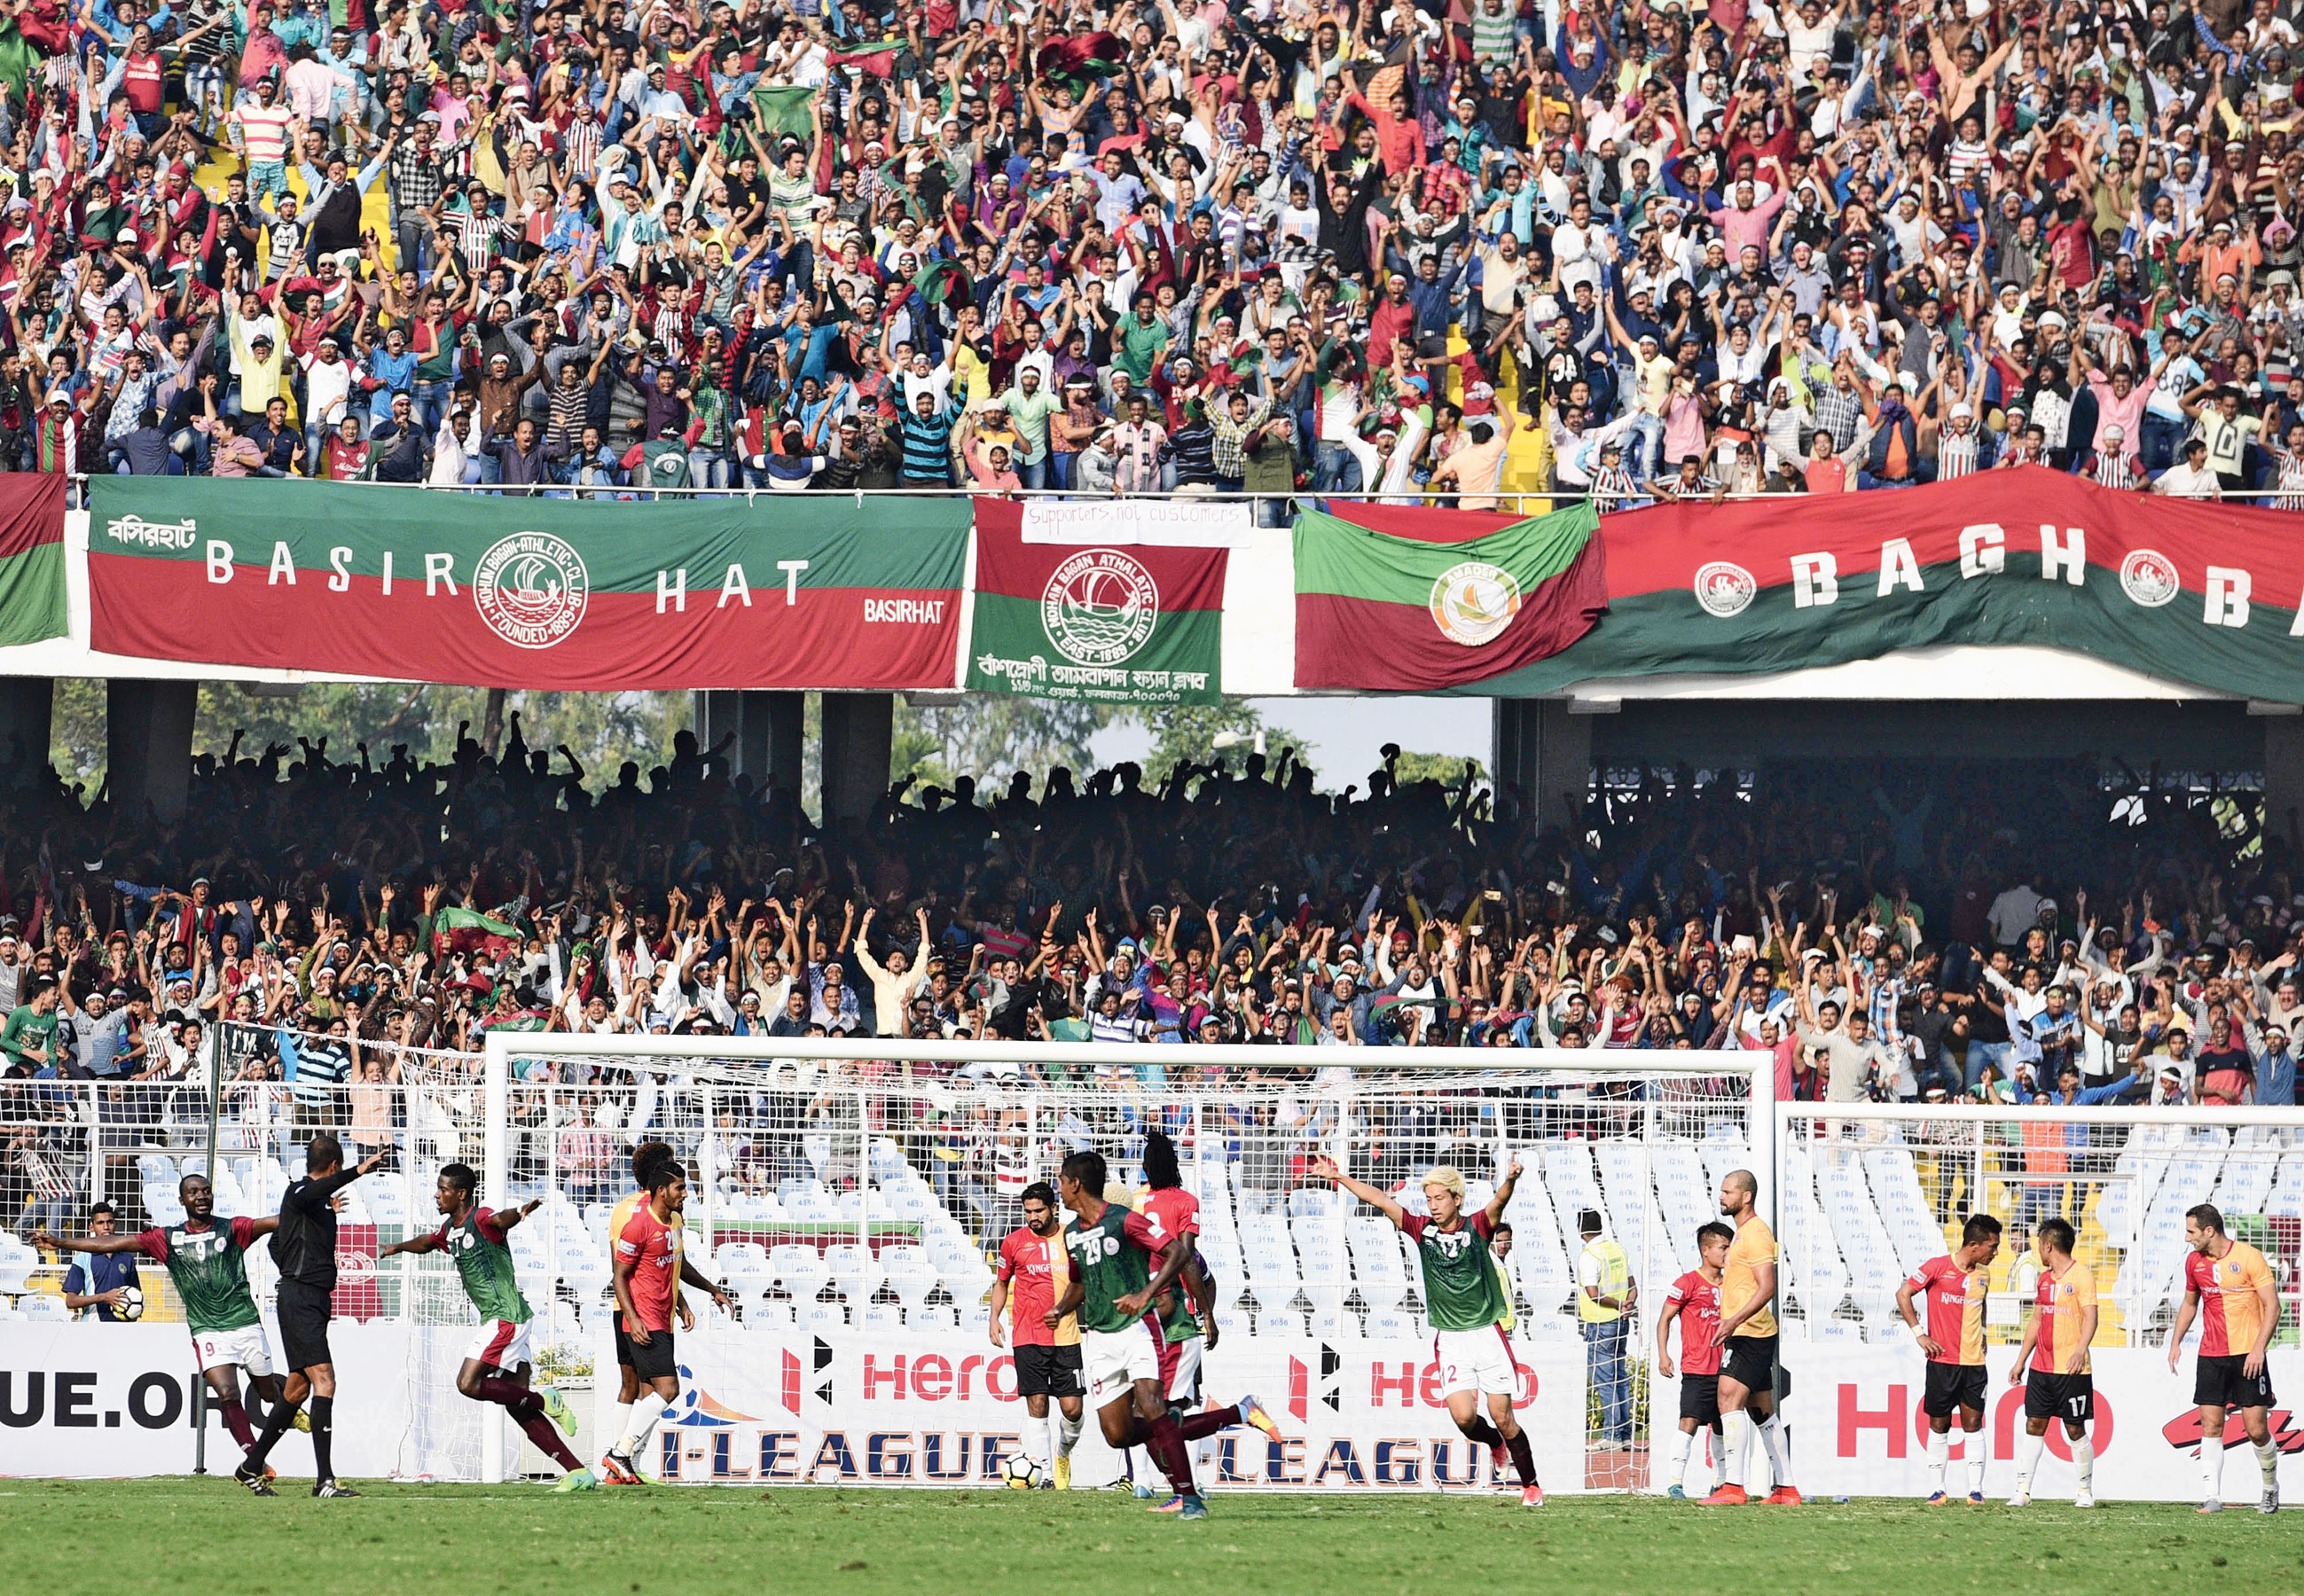 The iconic Calcutta Derby has been postponed following the home team, Mohun Bagan's request to I-League CEO Sunanda Dhar